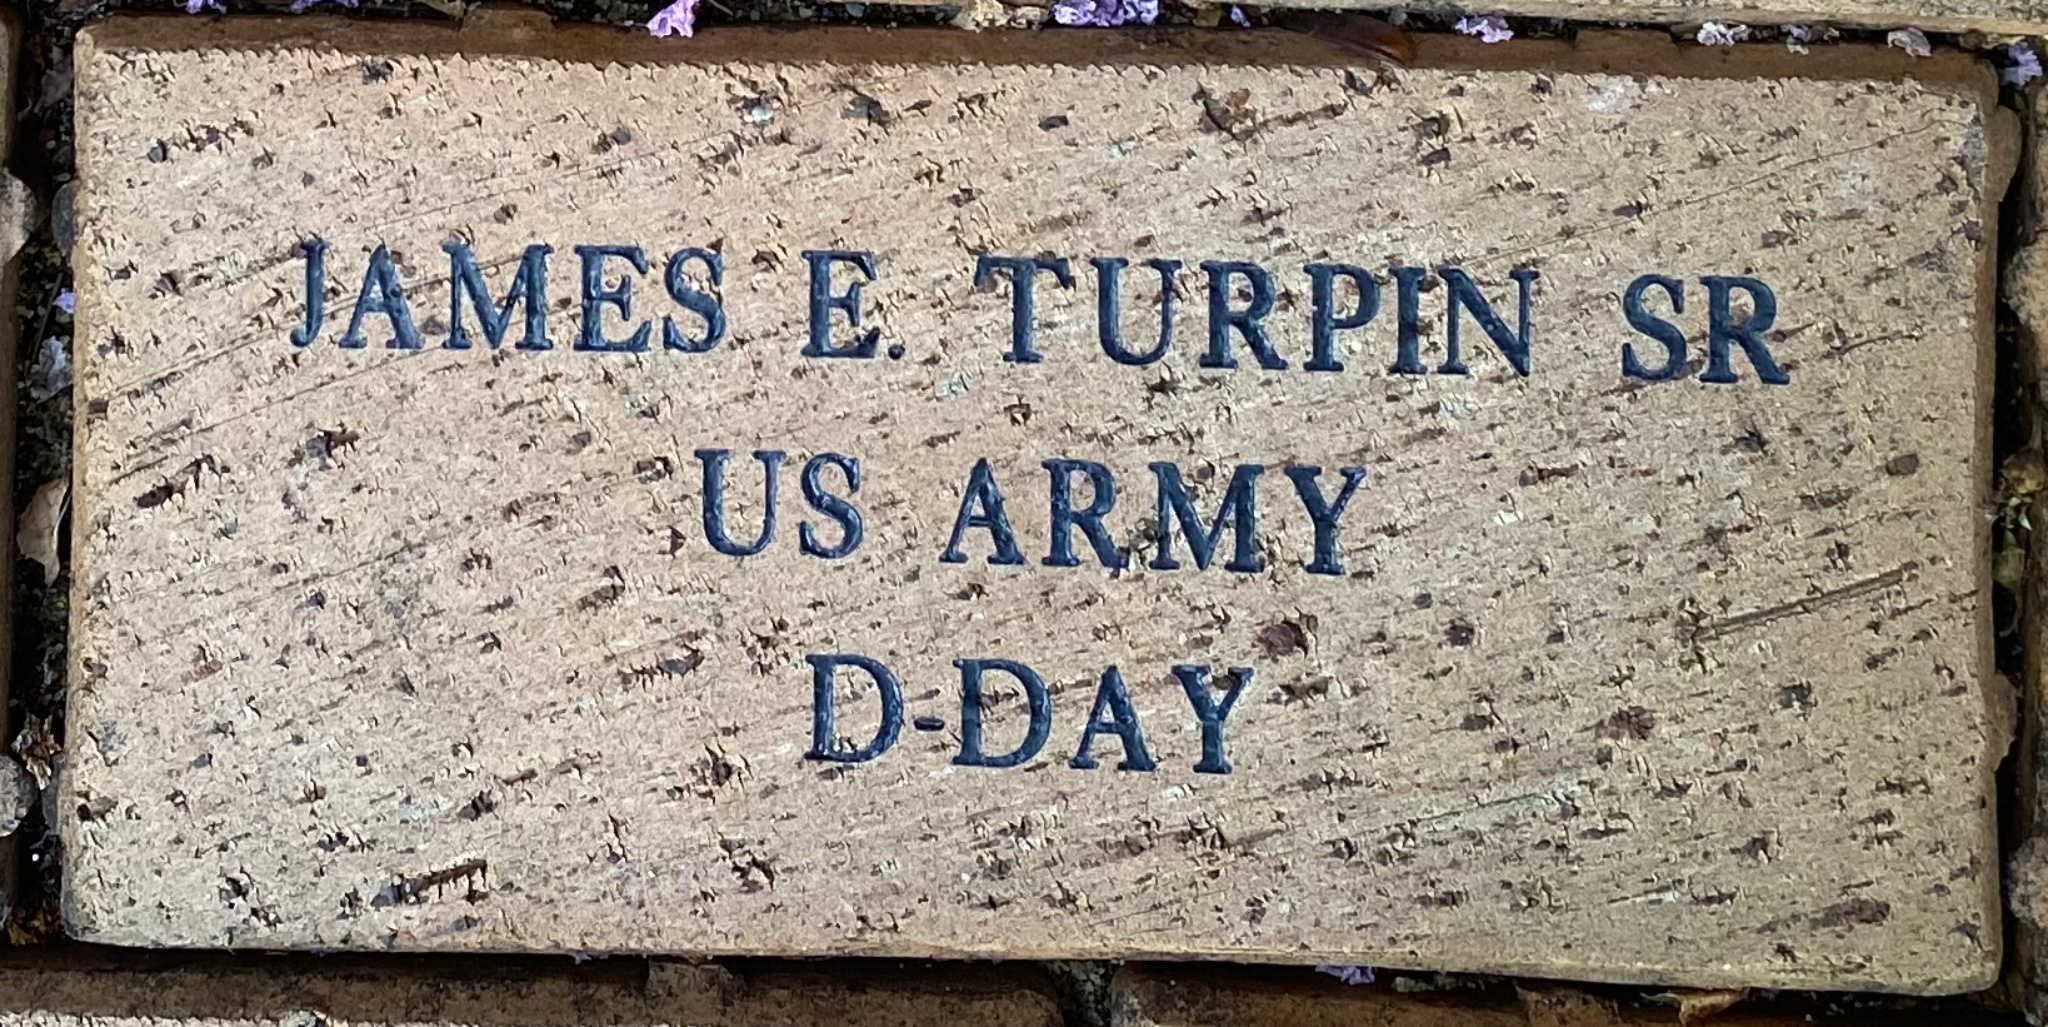 JAMES E. TURPIN SR US ARMY D-DAY